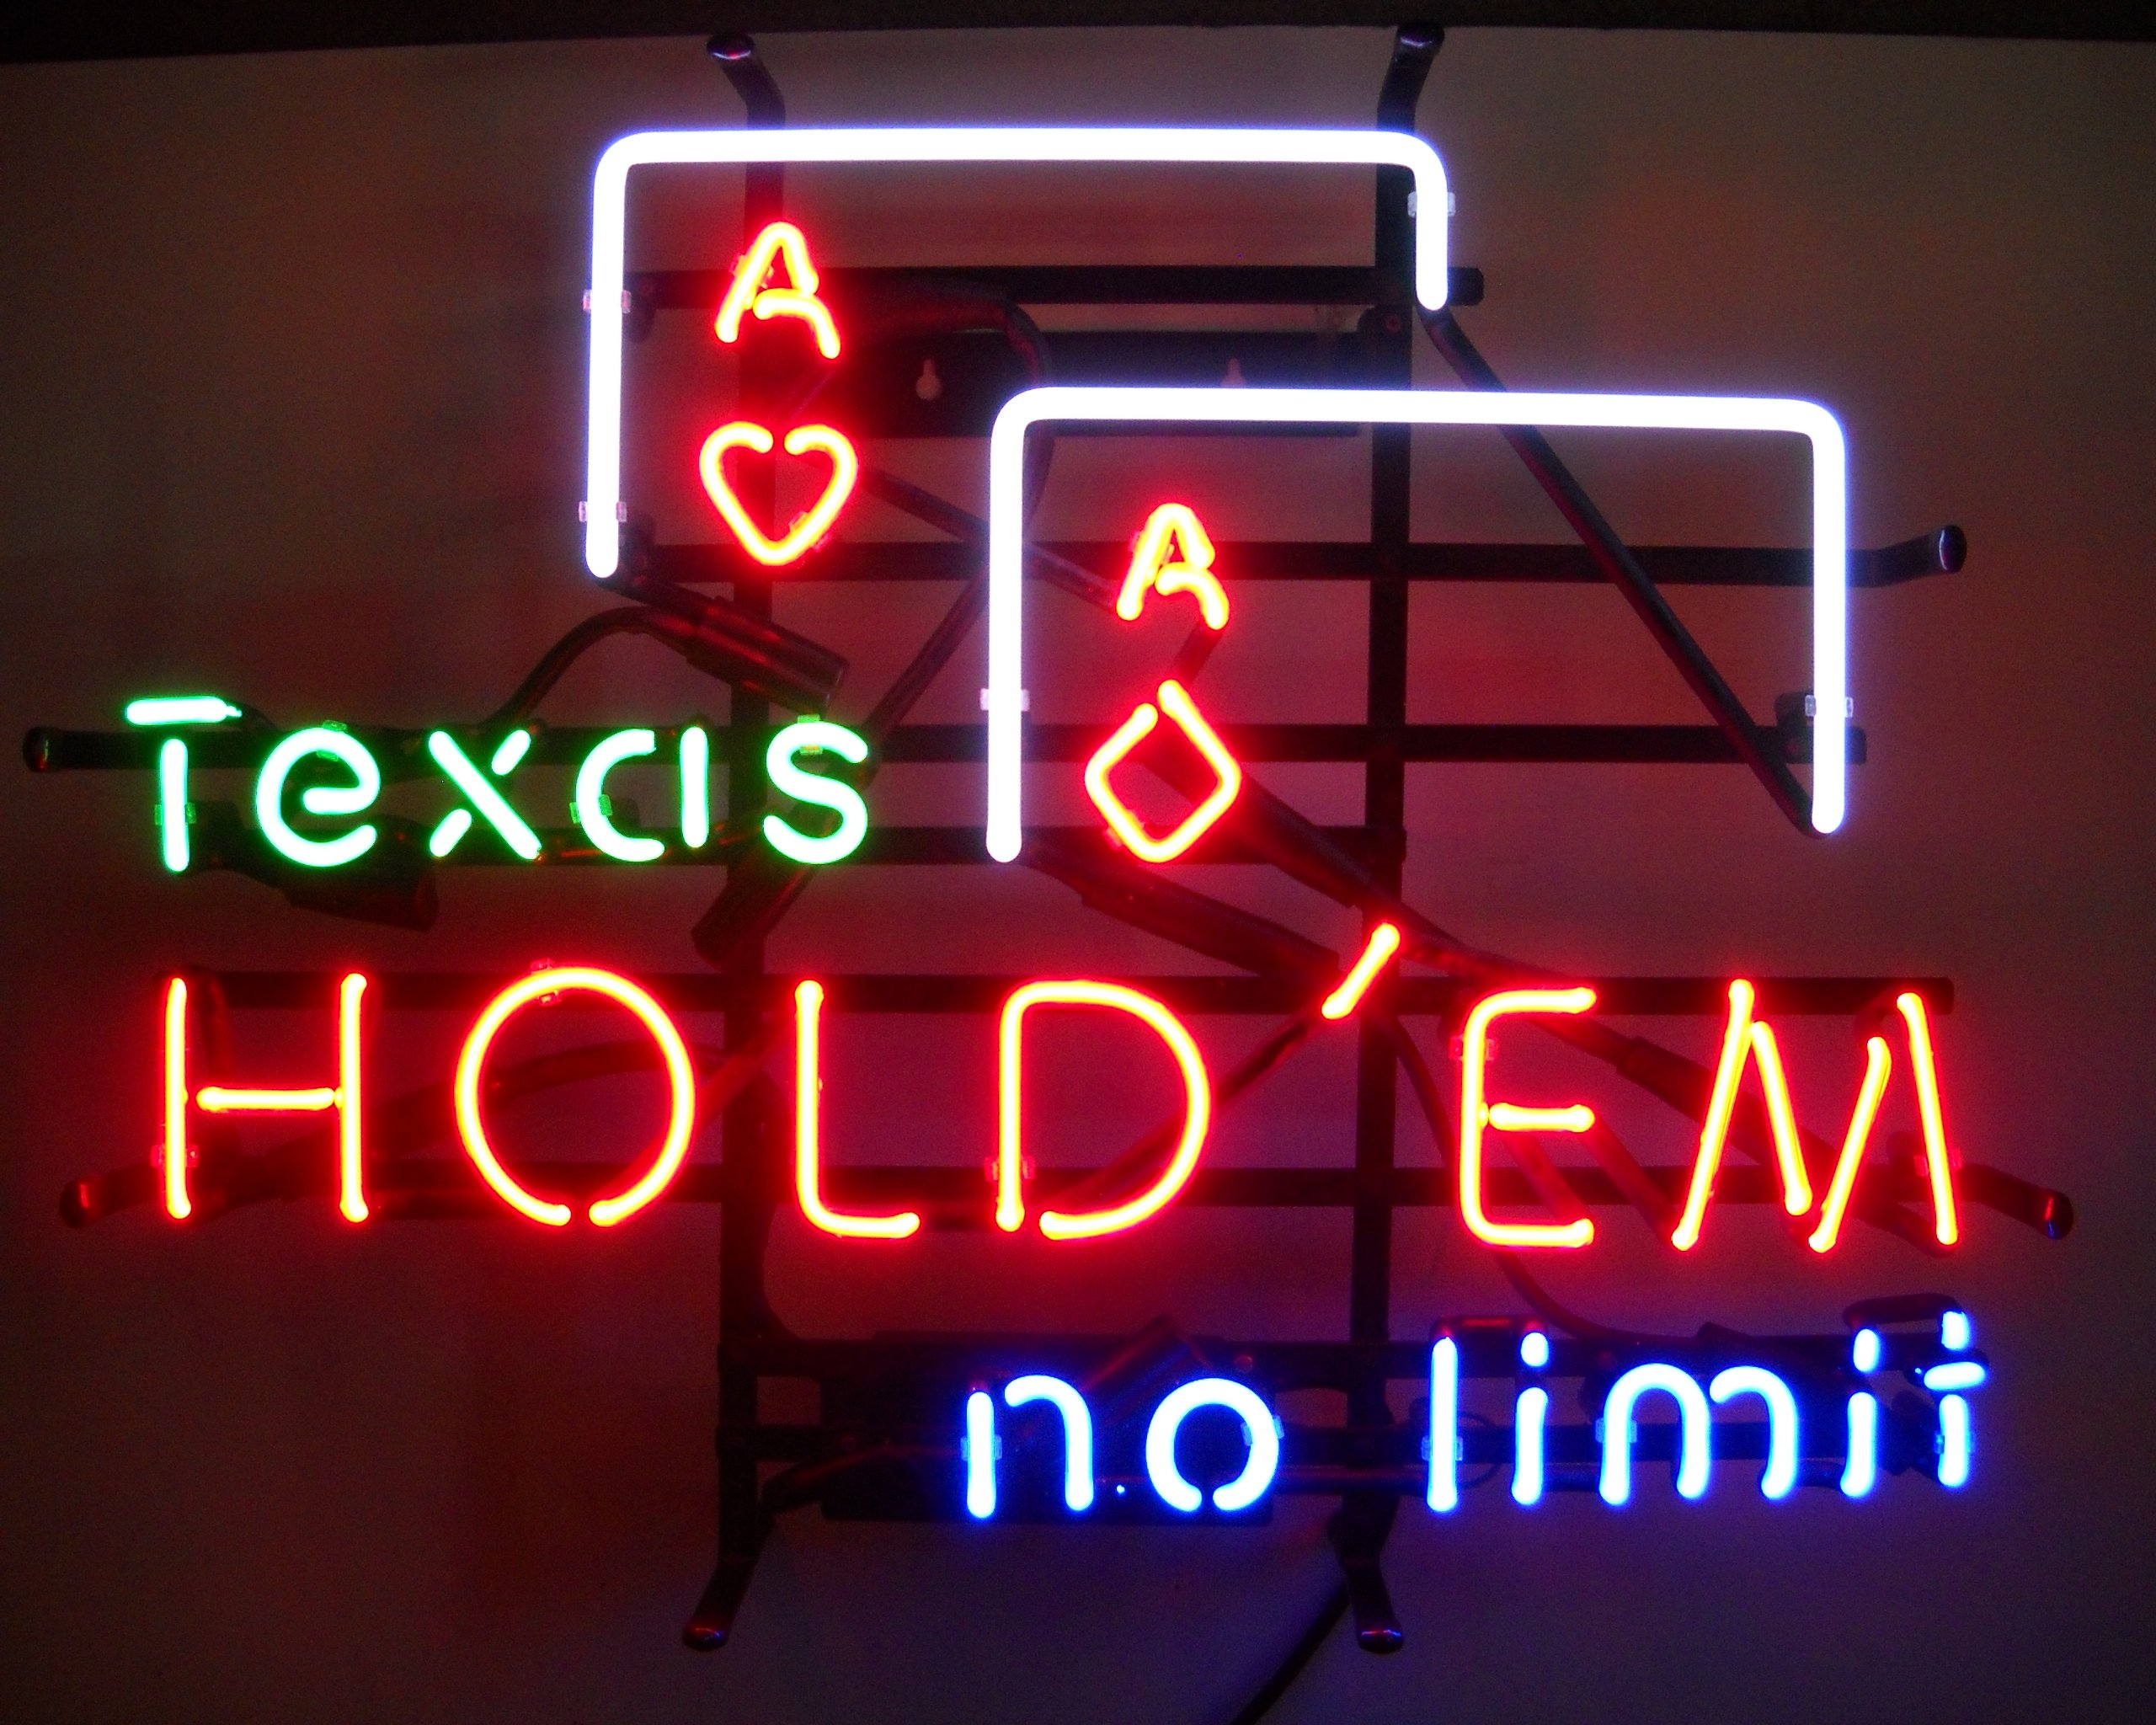 Neonetics 5TEXAS Texas Hold 'Em No Limit Neon Business Sign